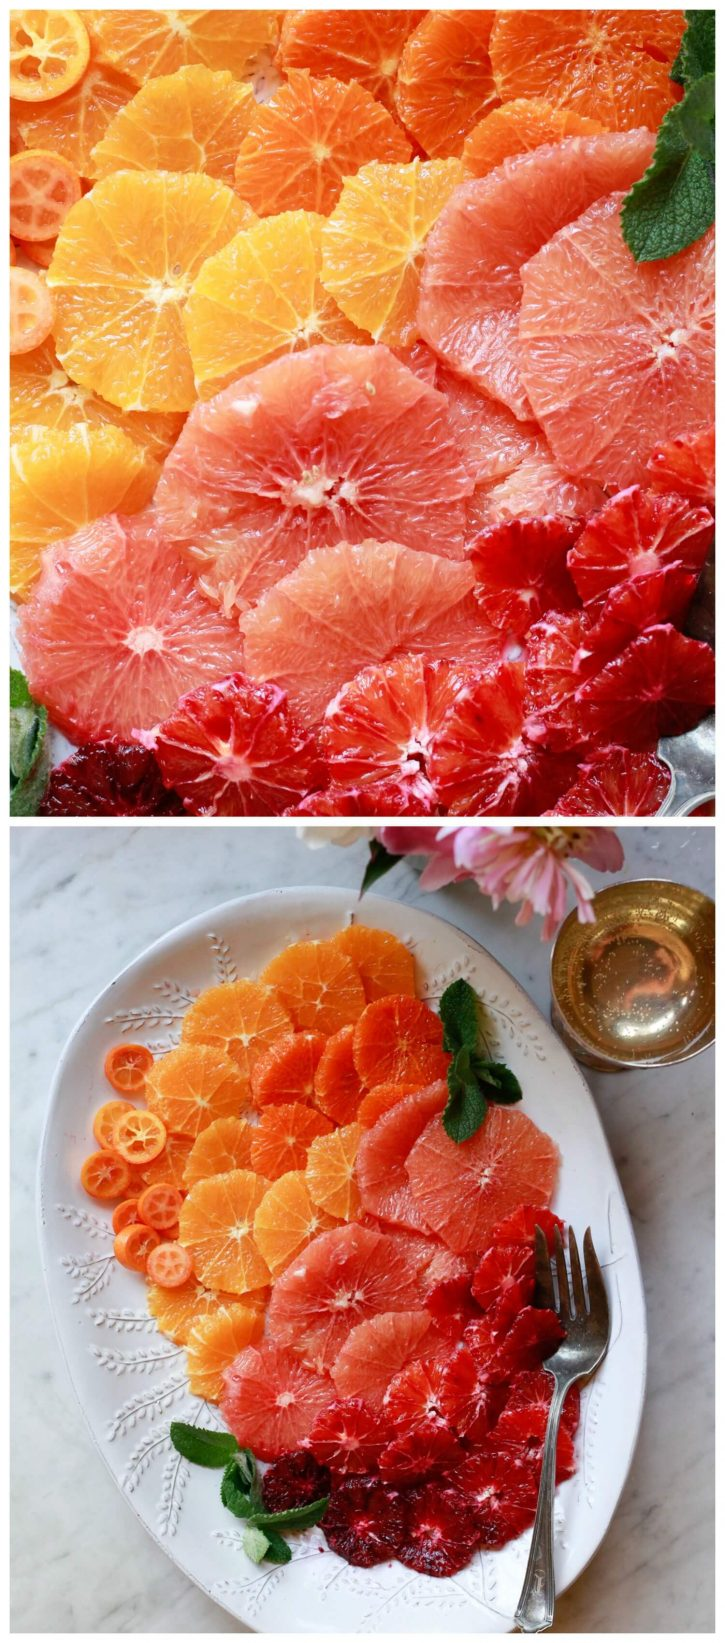 Citrus fruit salad recipe. Orange, blood orange, grapefruit, and kumquat slices arranged in an ombre pattern on an oval serving platter. A beautiful, easy, and healthy brunch or meal prep recipe.